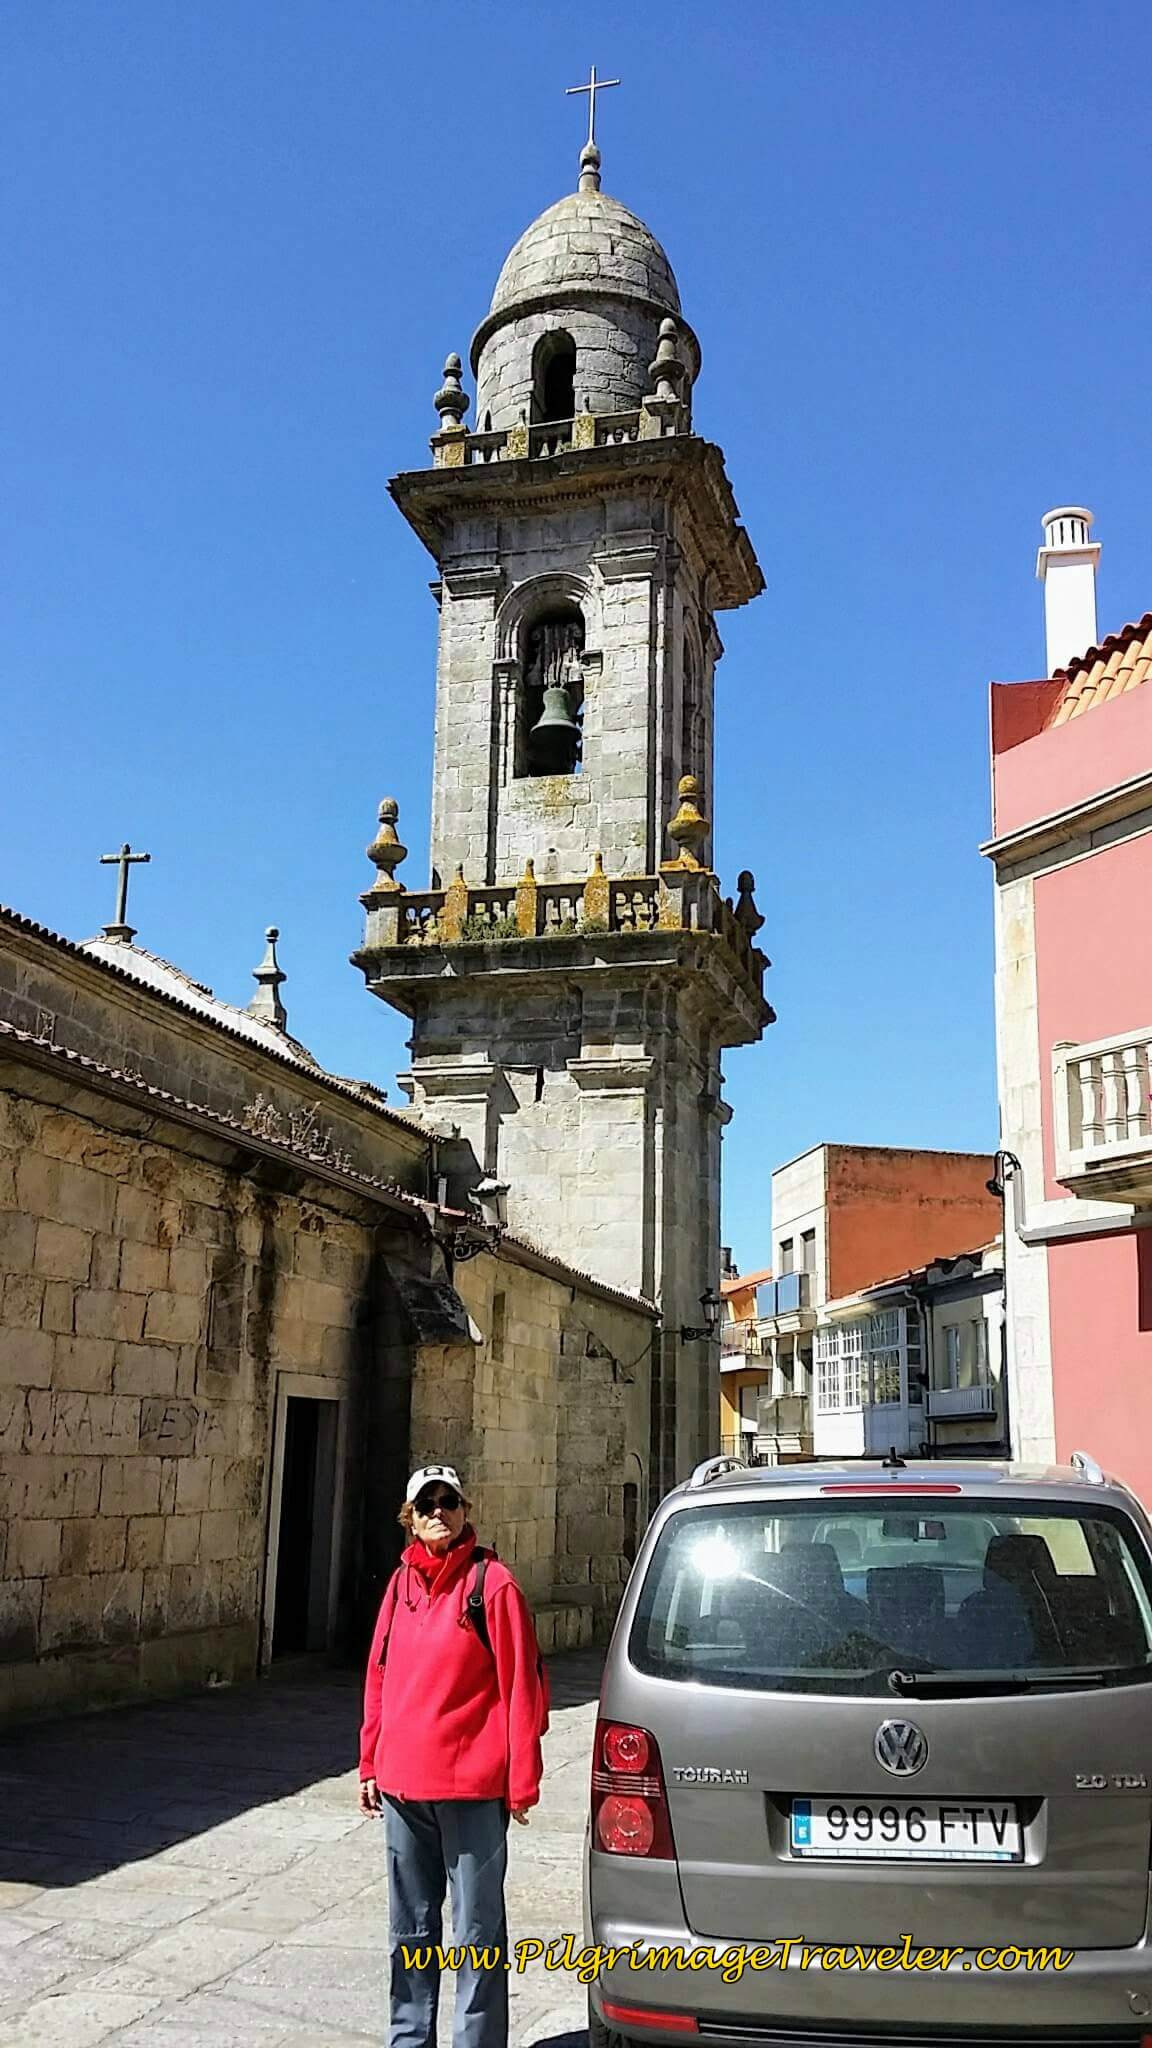 Glyvia at the Parroquia de Santa María on Day Nineteen of the Portuguese Way